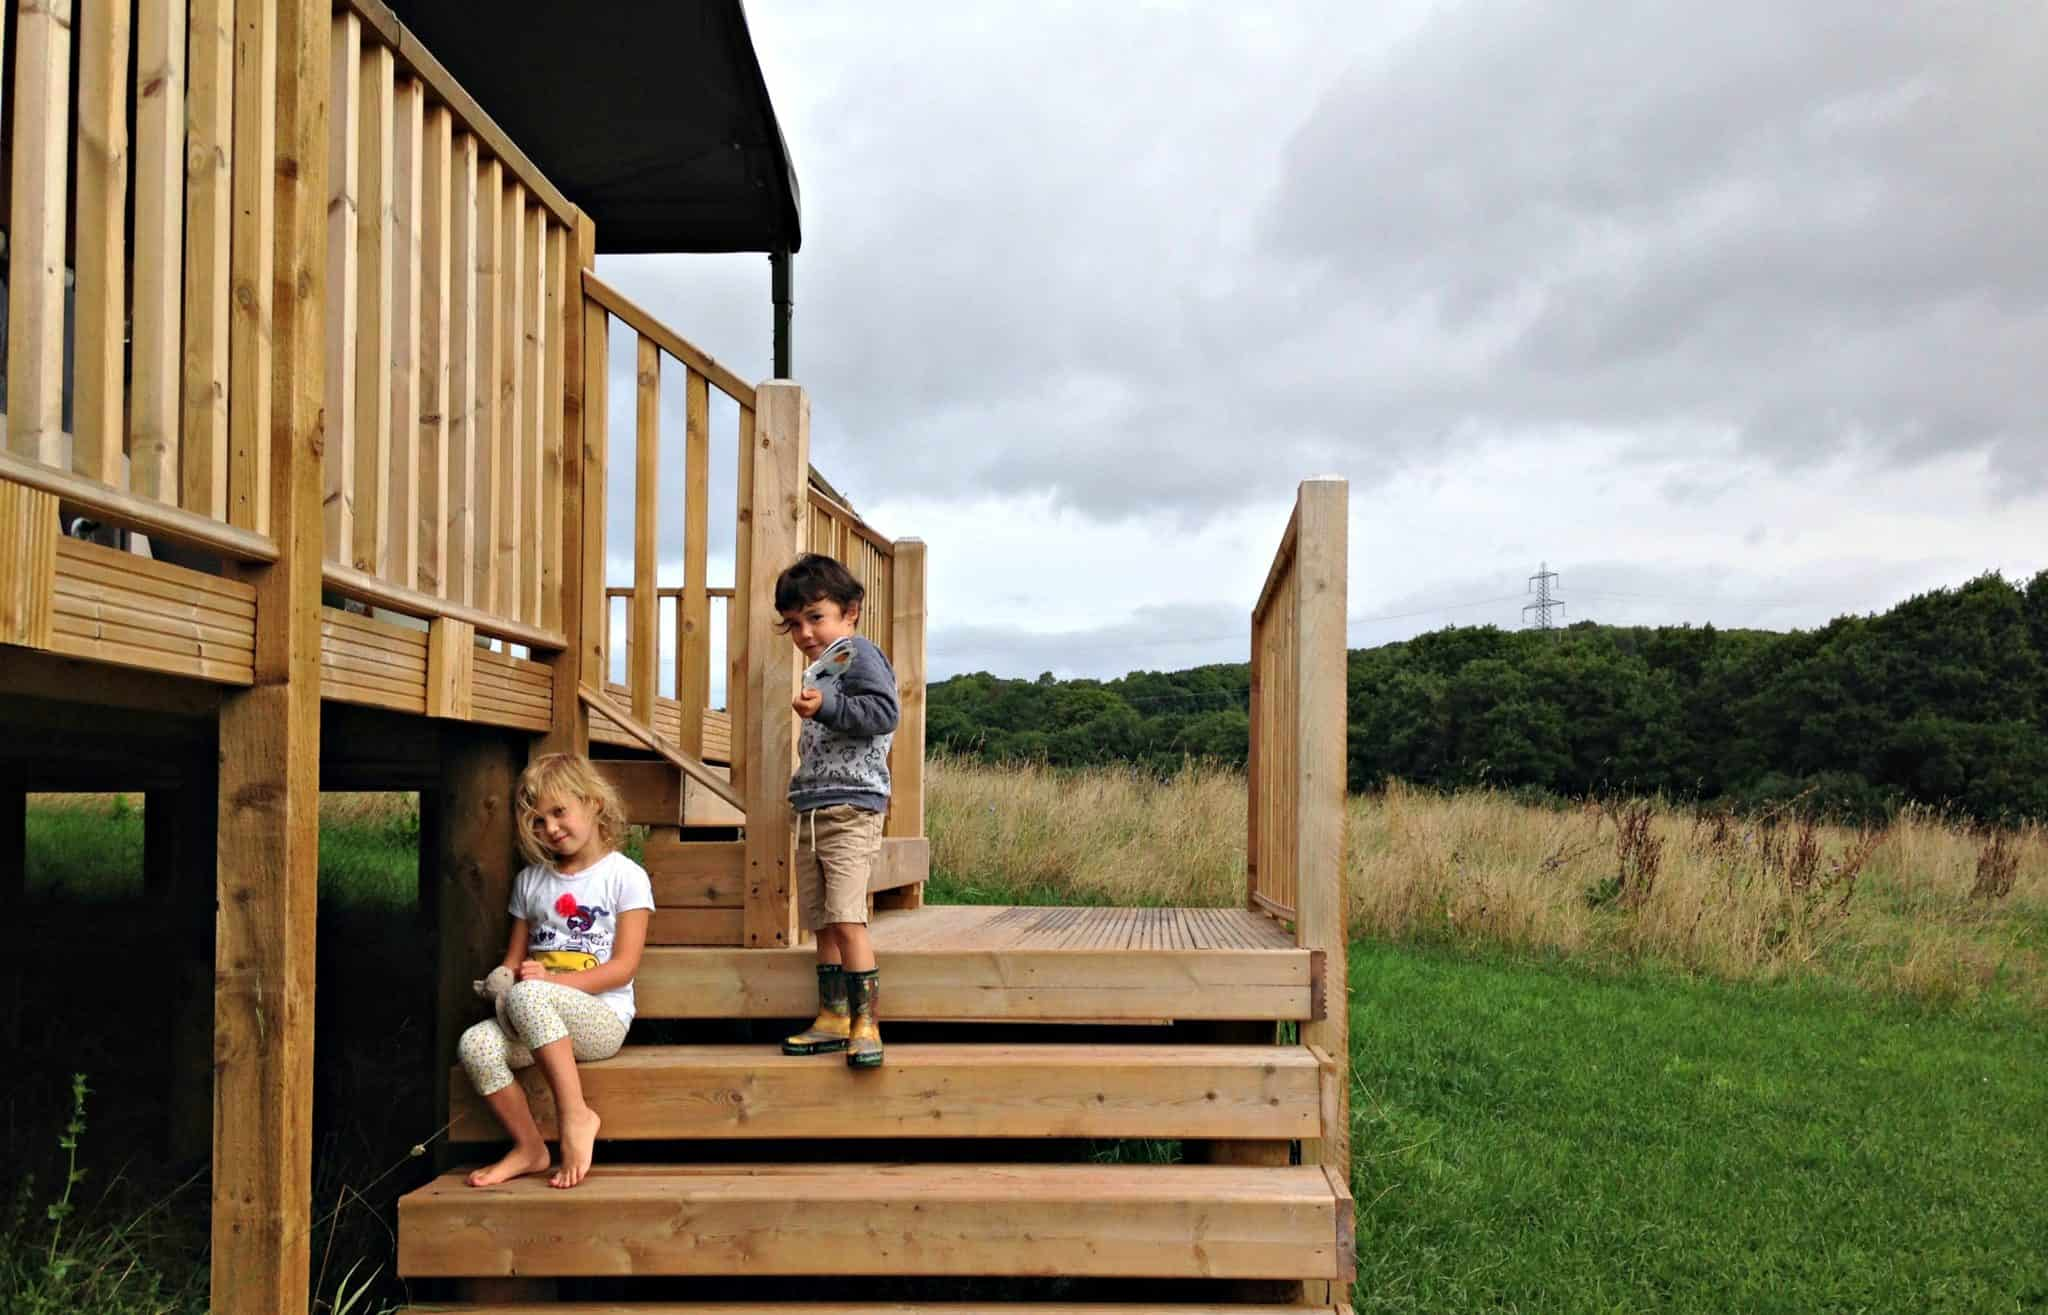 Glamping in Kittisford Barton, Somerset with Lantern & Larks